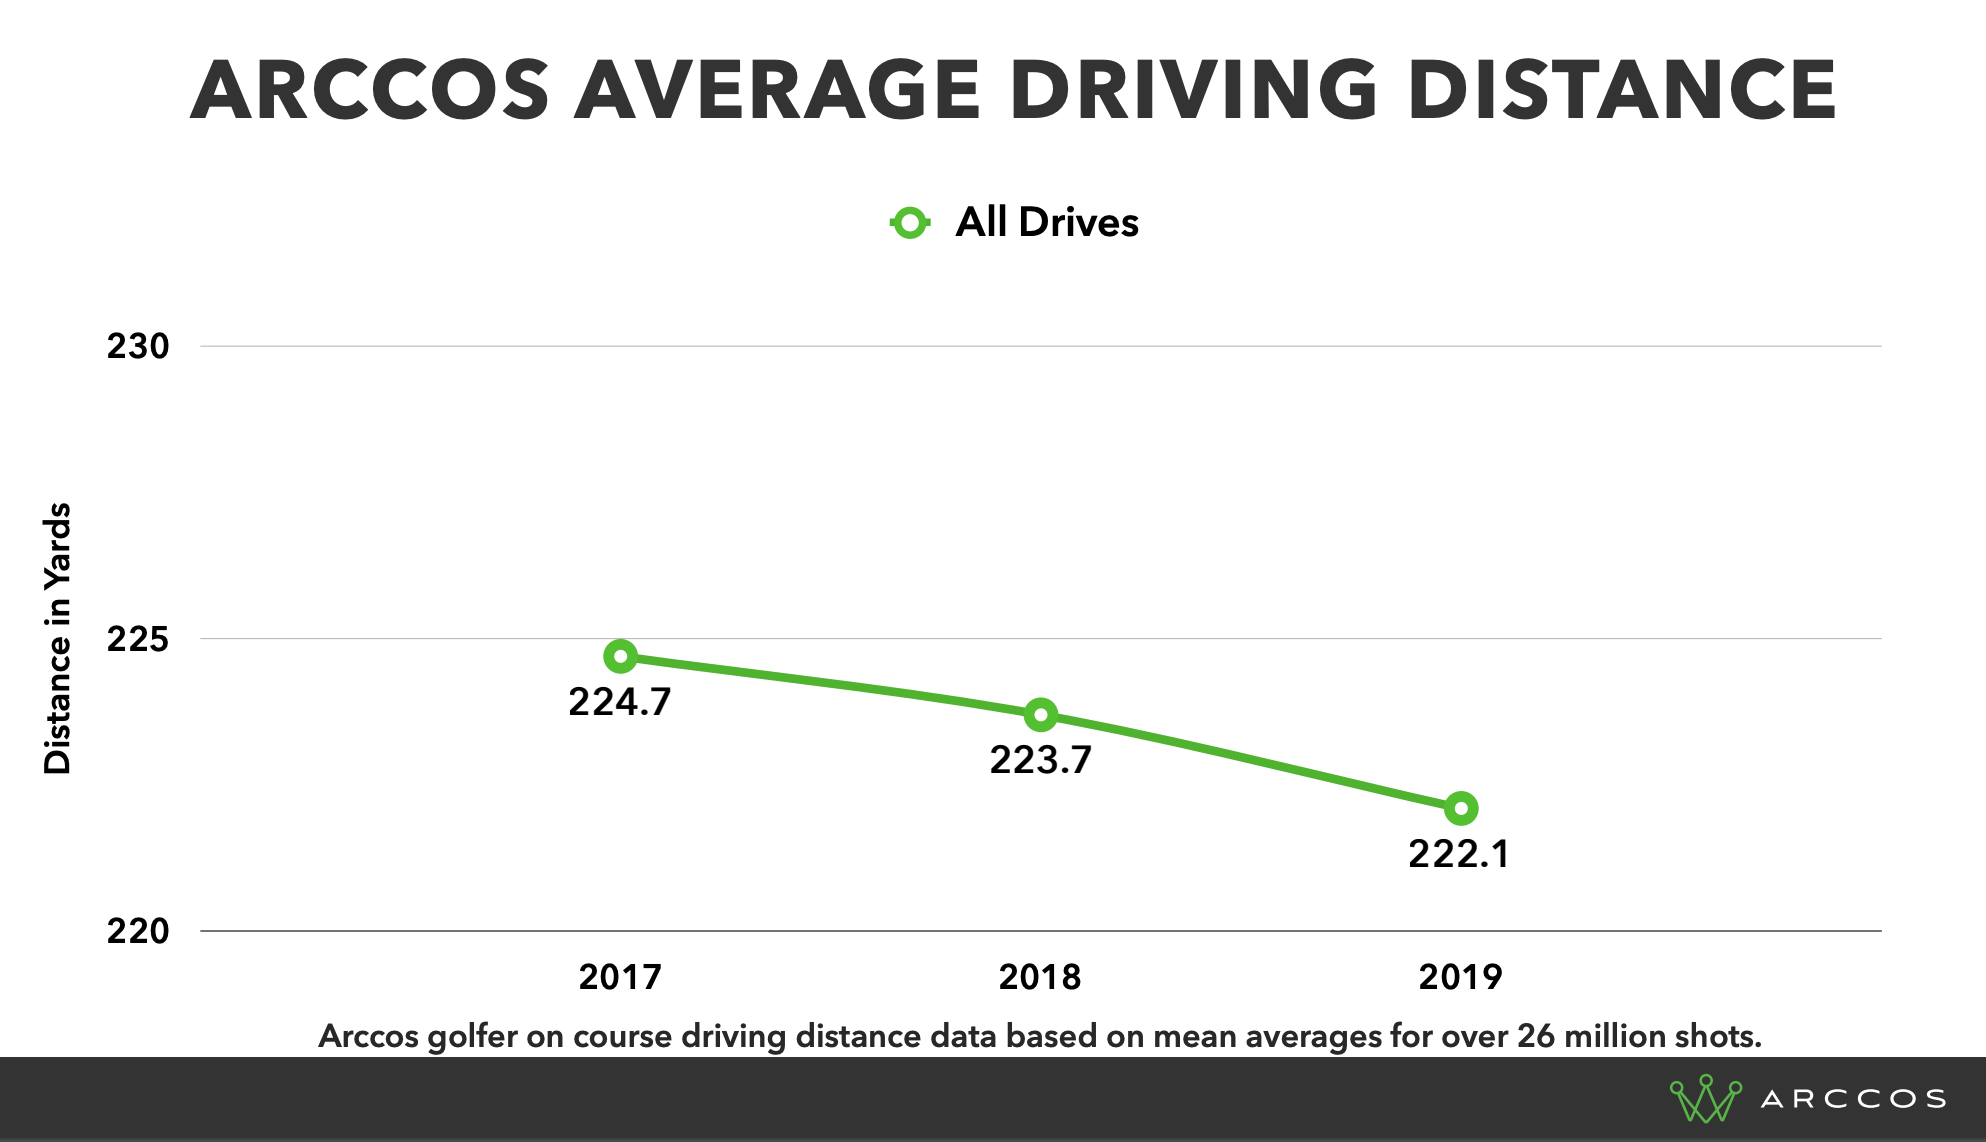 Average Driving Distance for Amateur Golfer Arccos Users